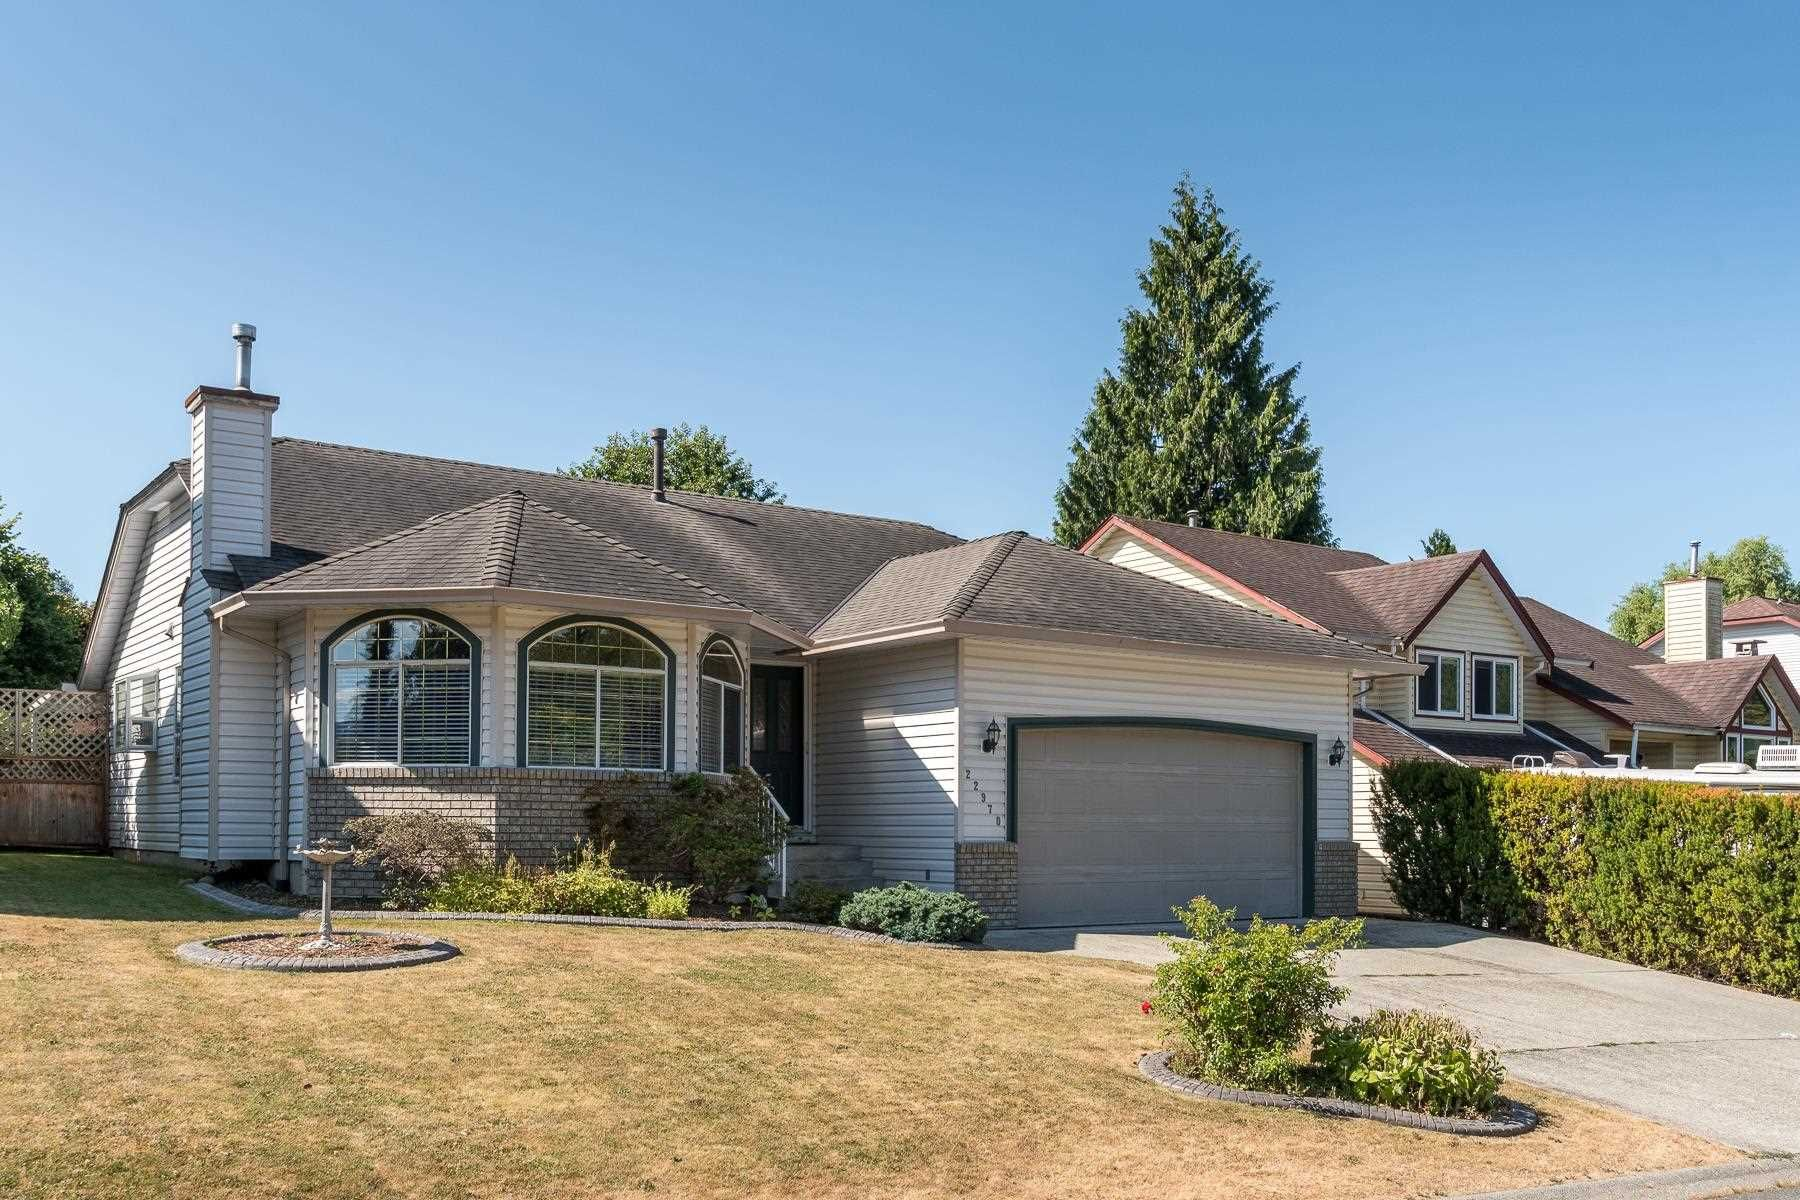 Main Photo: 22970 126 Avenue in Maple Ridge: East Central House for sale : MLS®# R2604751